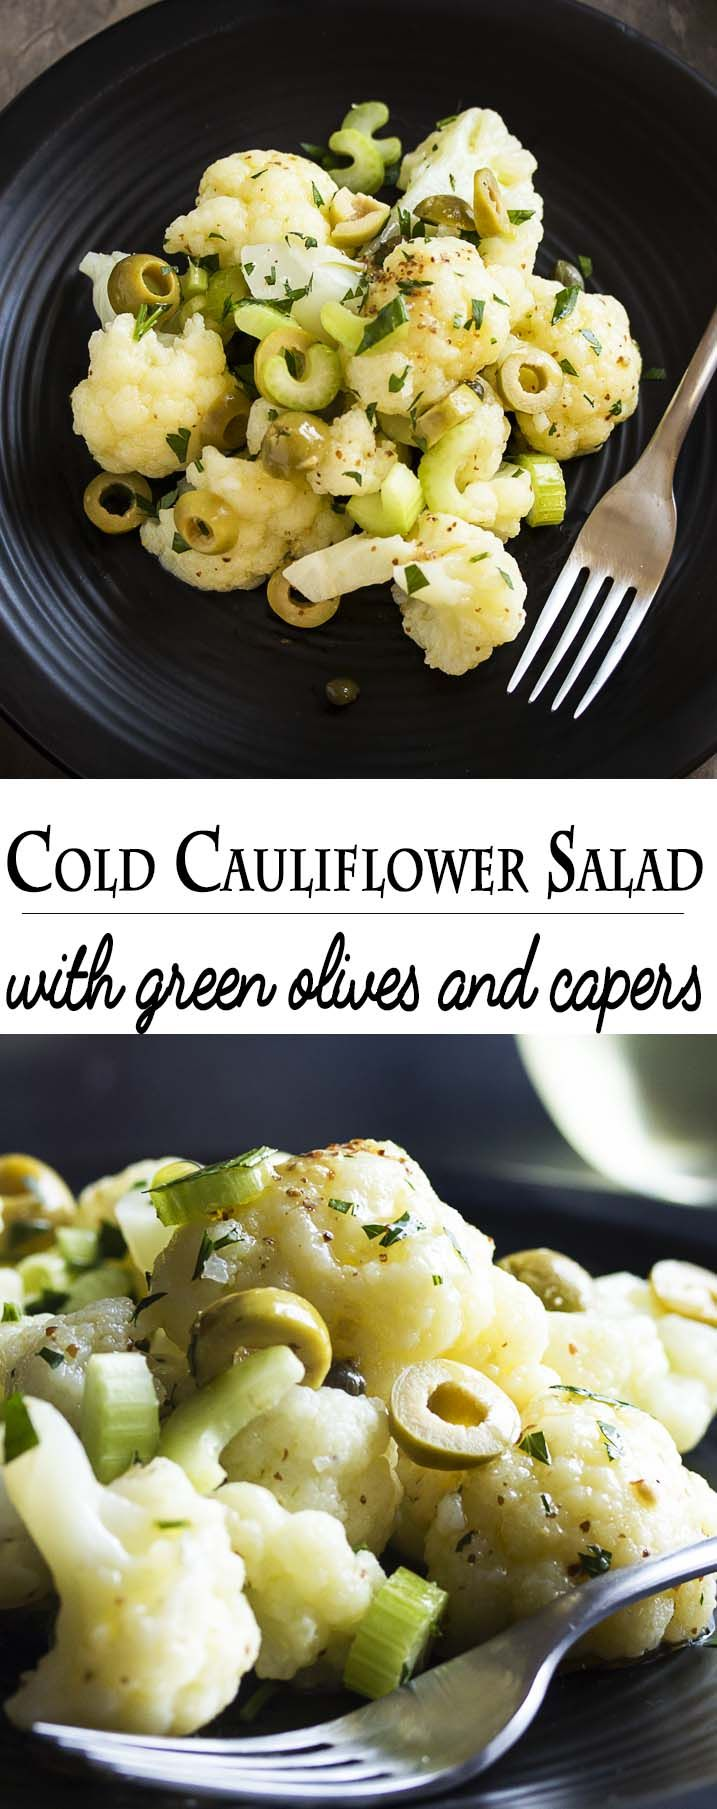 Cold cauliflower salad is a great year-round salad filled with tender cauliflower, briny capers, meaty green olives and plenty of fresh parsley. | justalittlebitofbacon.com